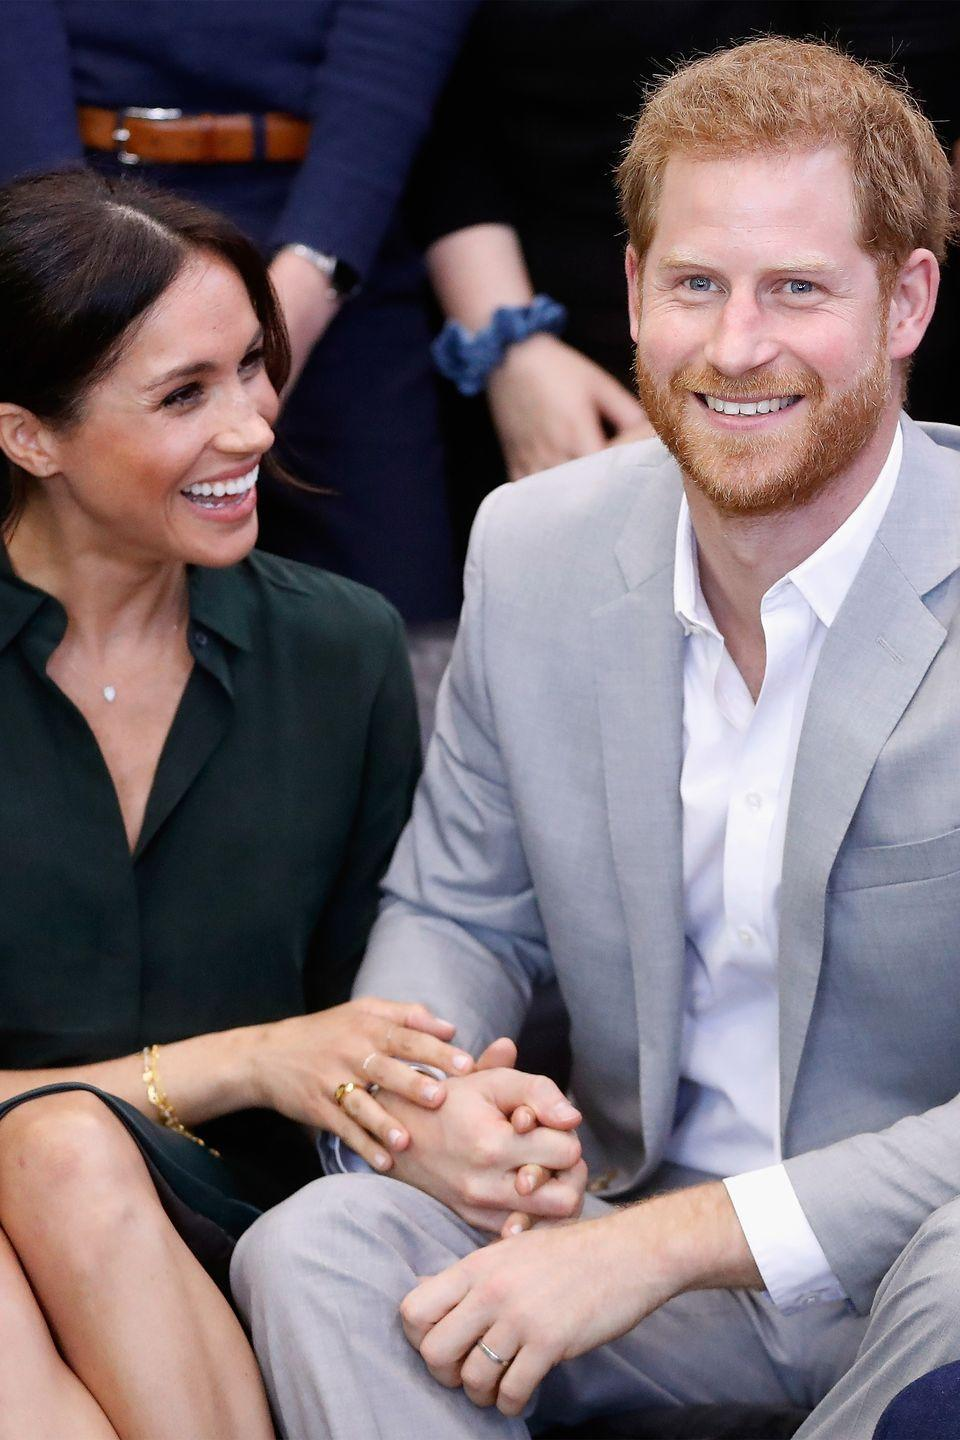 <p>That same day, they also visited the Joff Youth Centre in Peacehaven, where they made hearts melt as they held hands and giggled. </p>